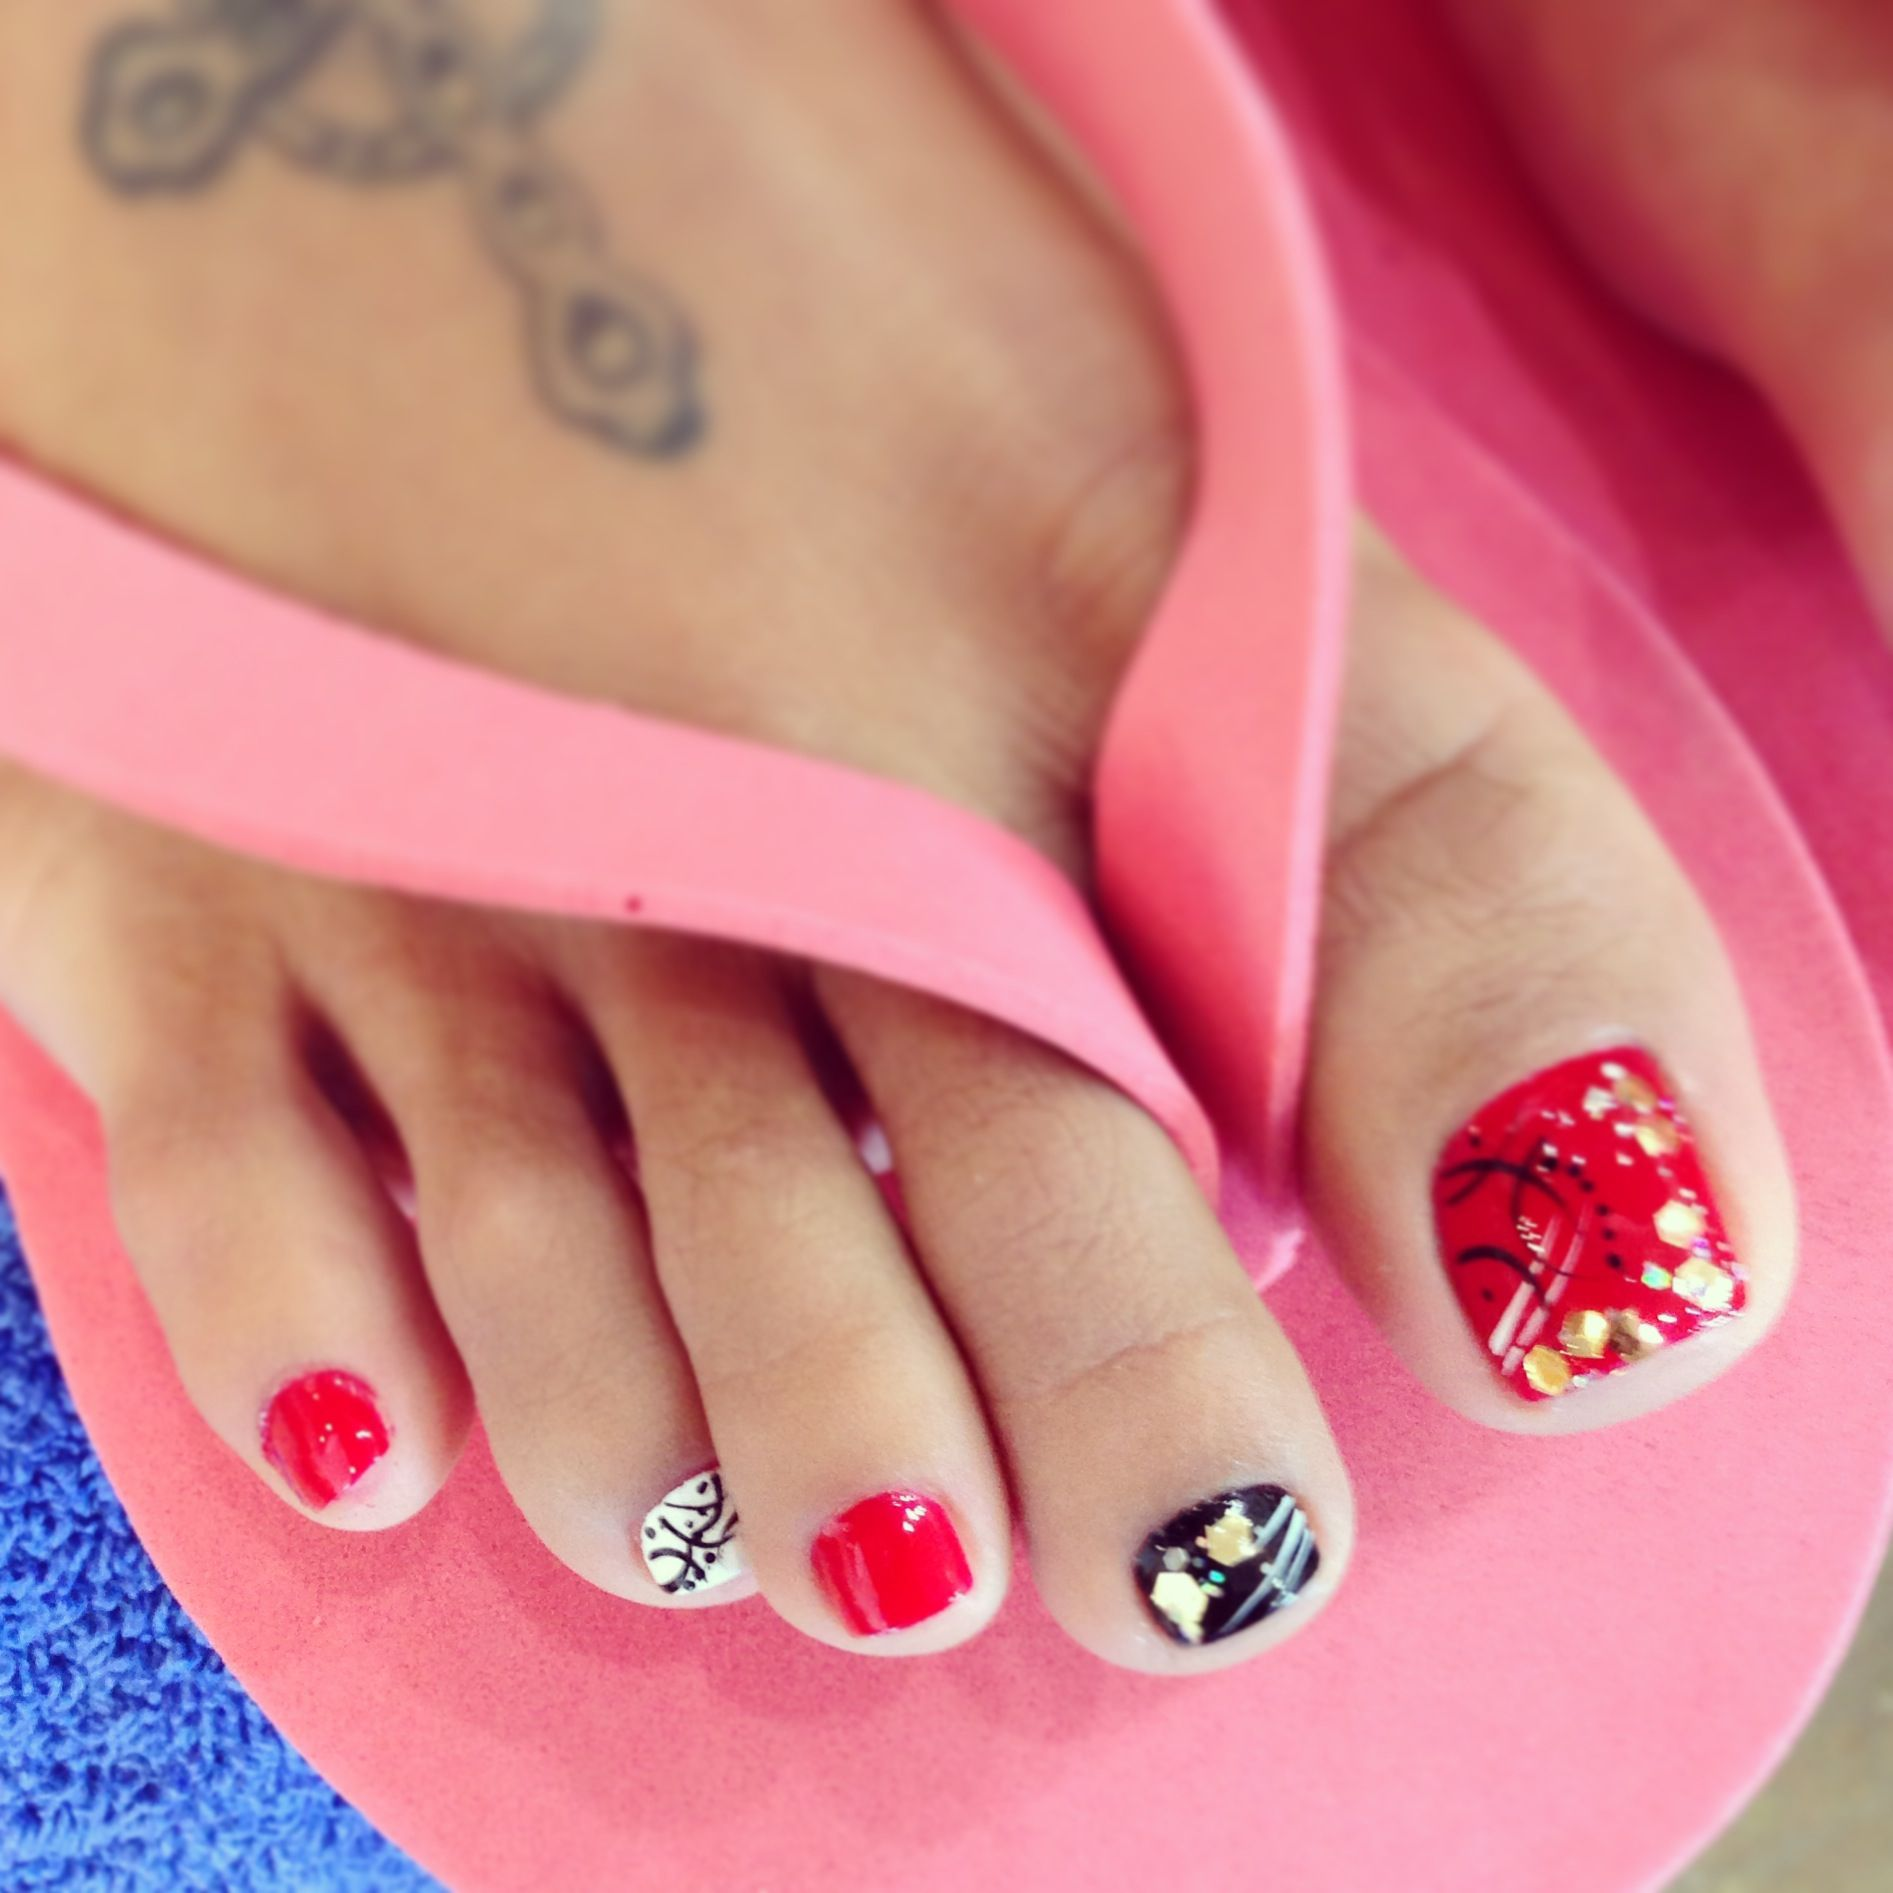 Little Red Bumps on the Toes | LIVESTRONG.COM